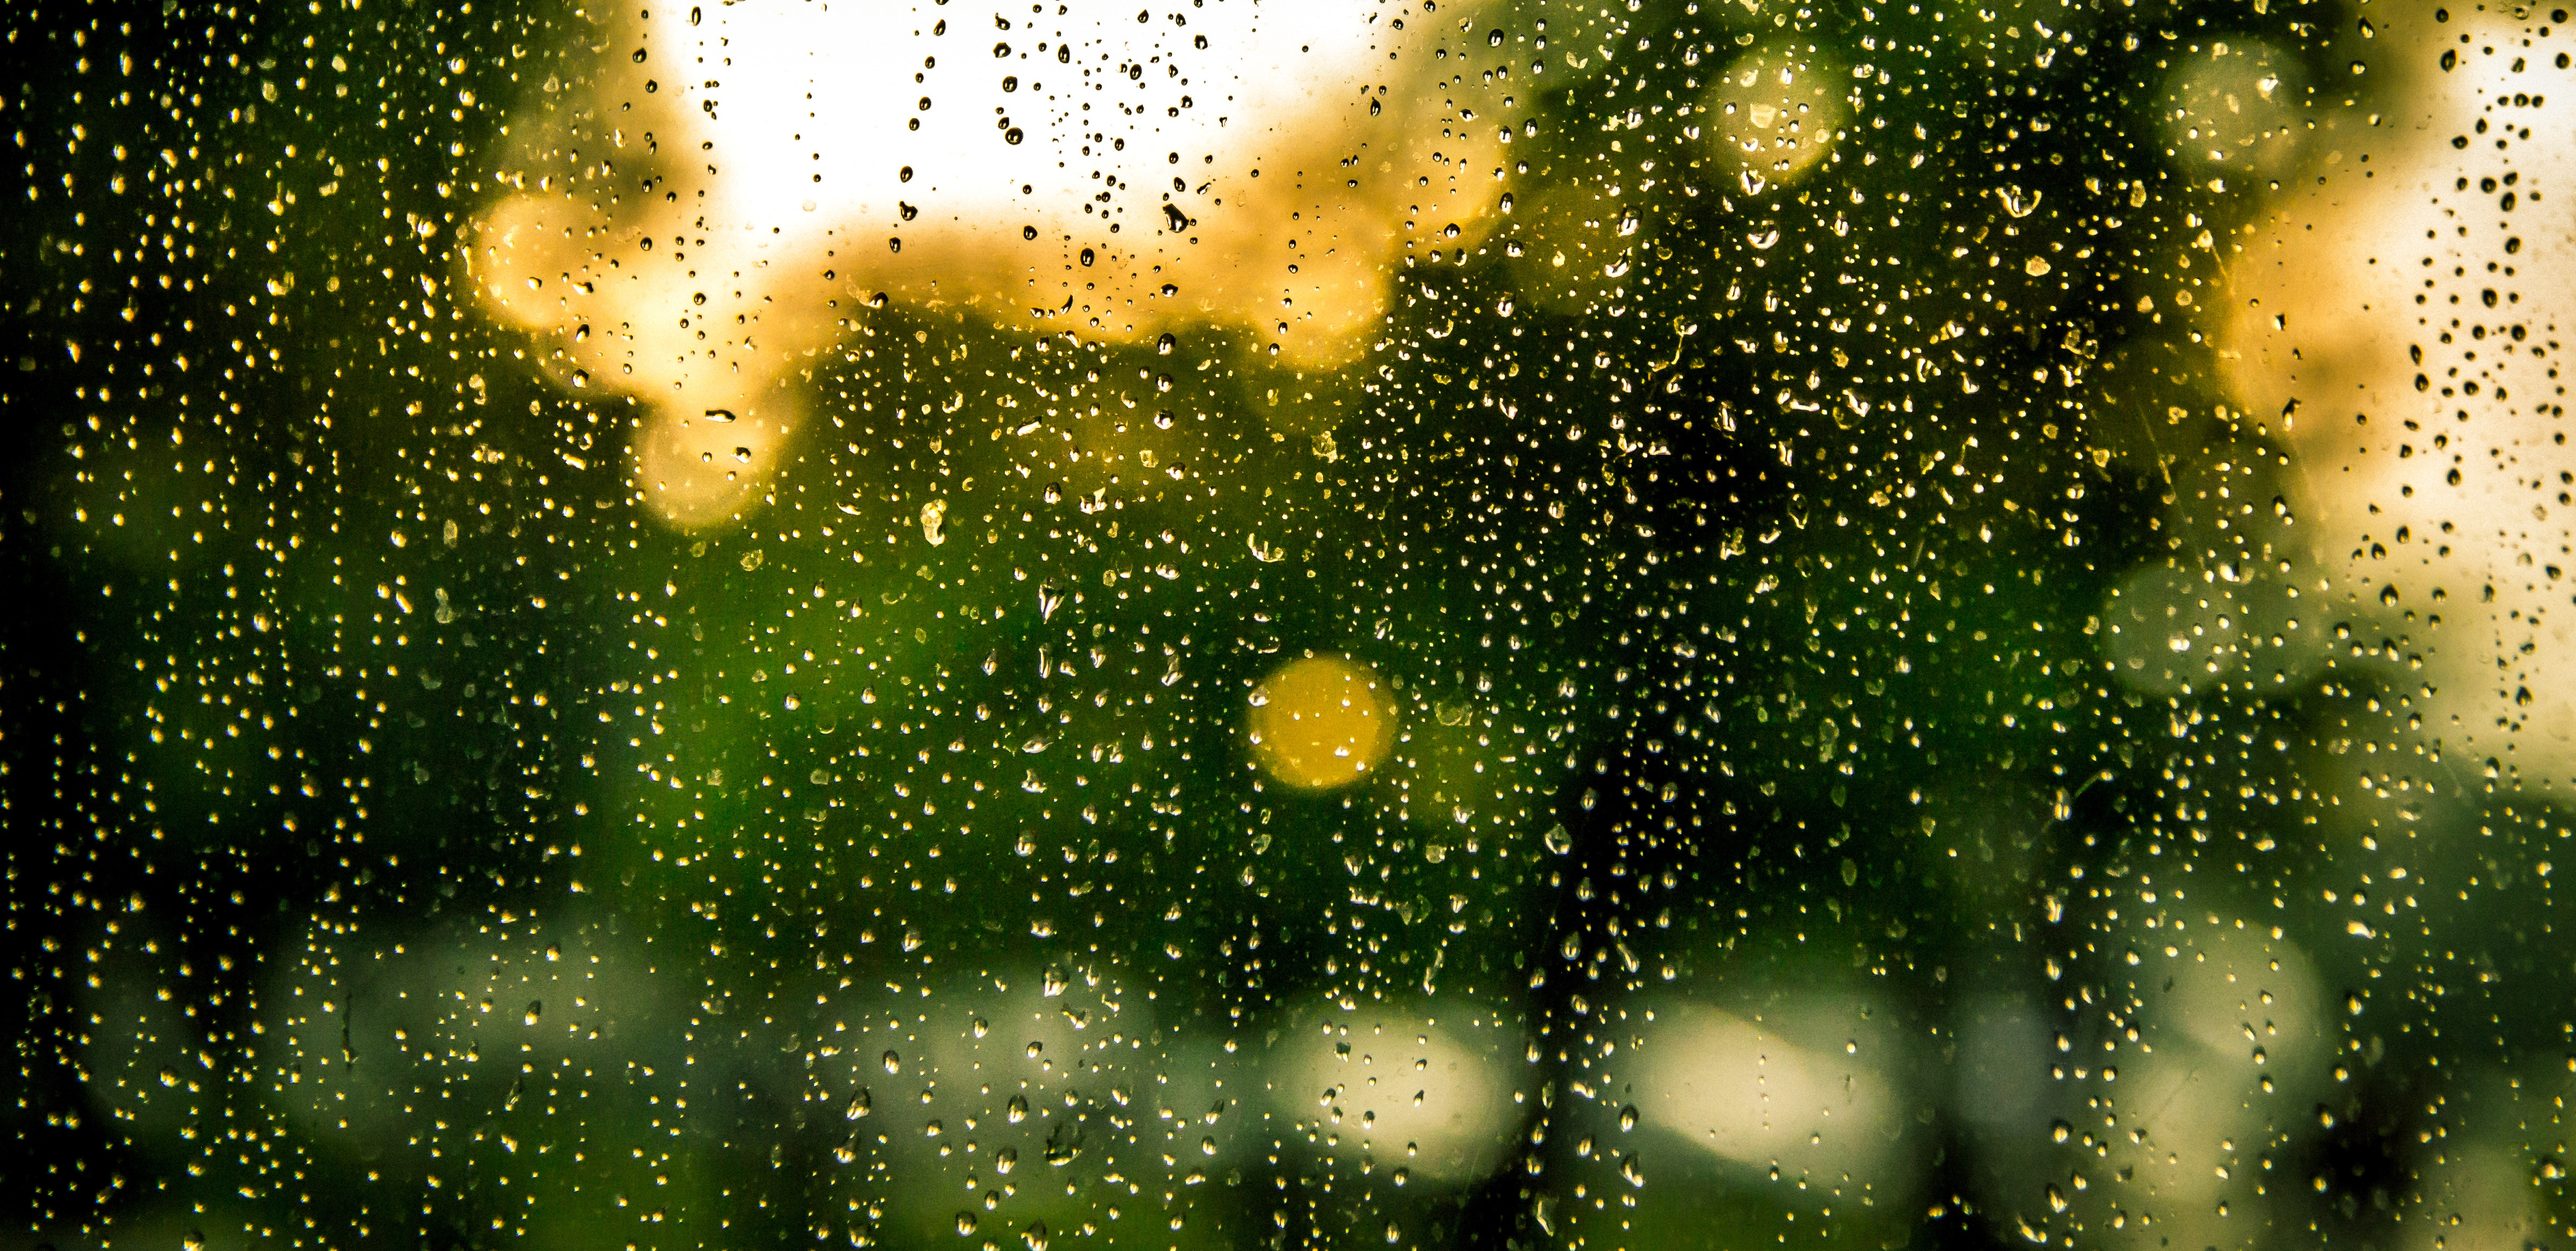 water dew in clear glass panel free stock photo